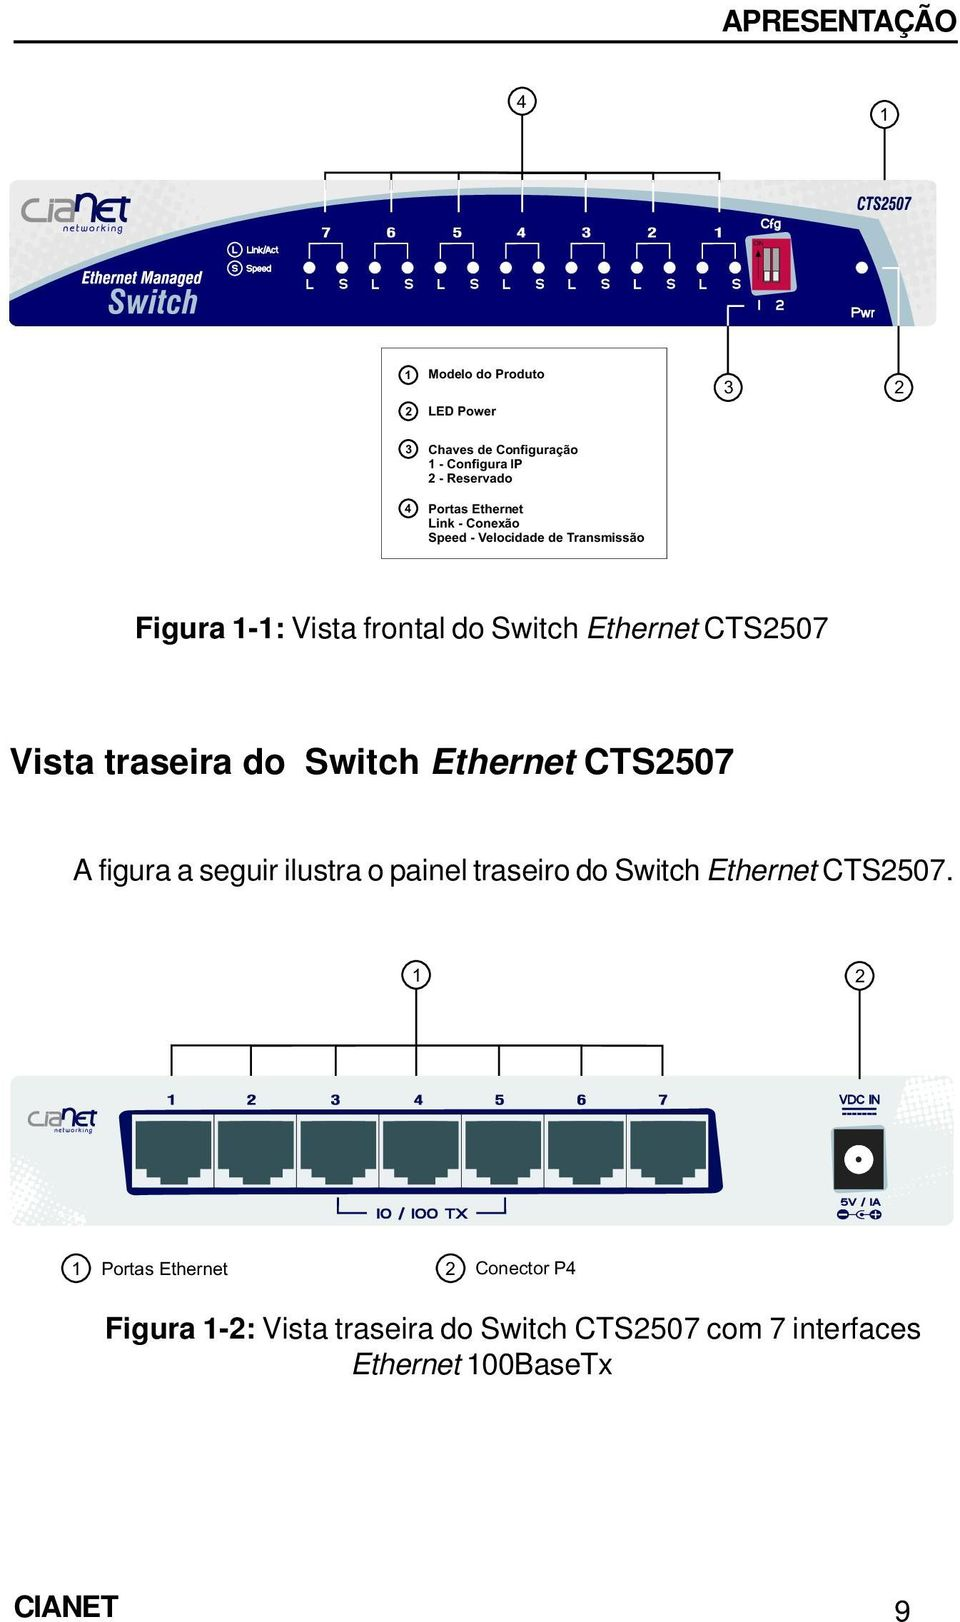 Vista traseira do Switch Ethernet CTS2507 A figura a seguir ilustra o painel traseiro do Switch Ethernet CTS2507.